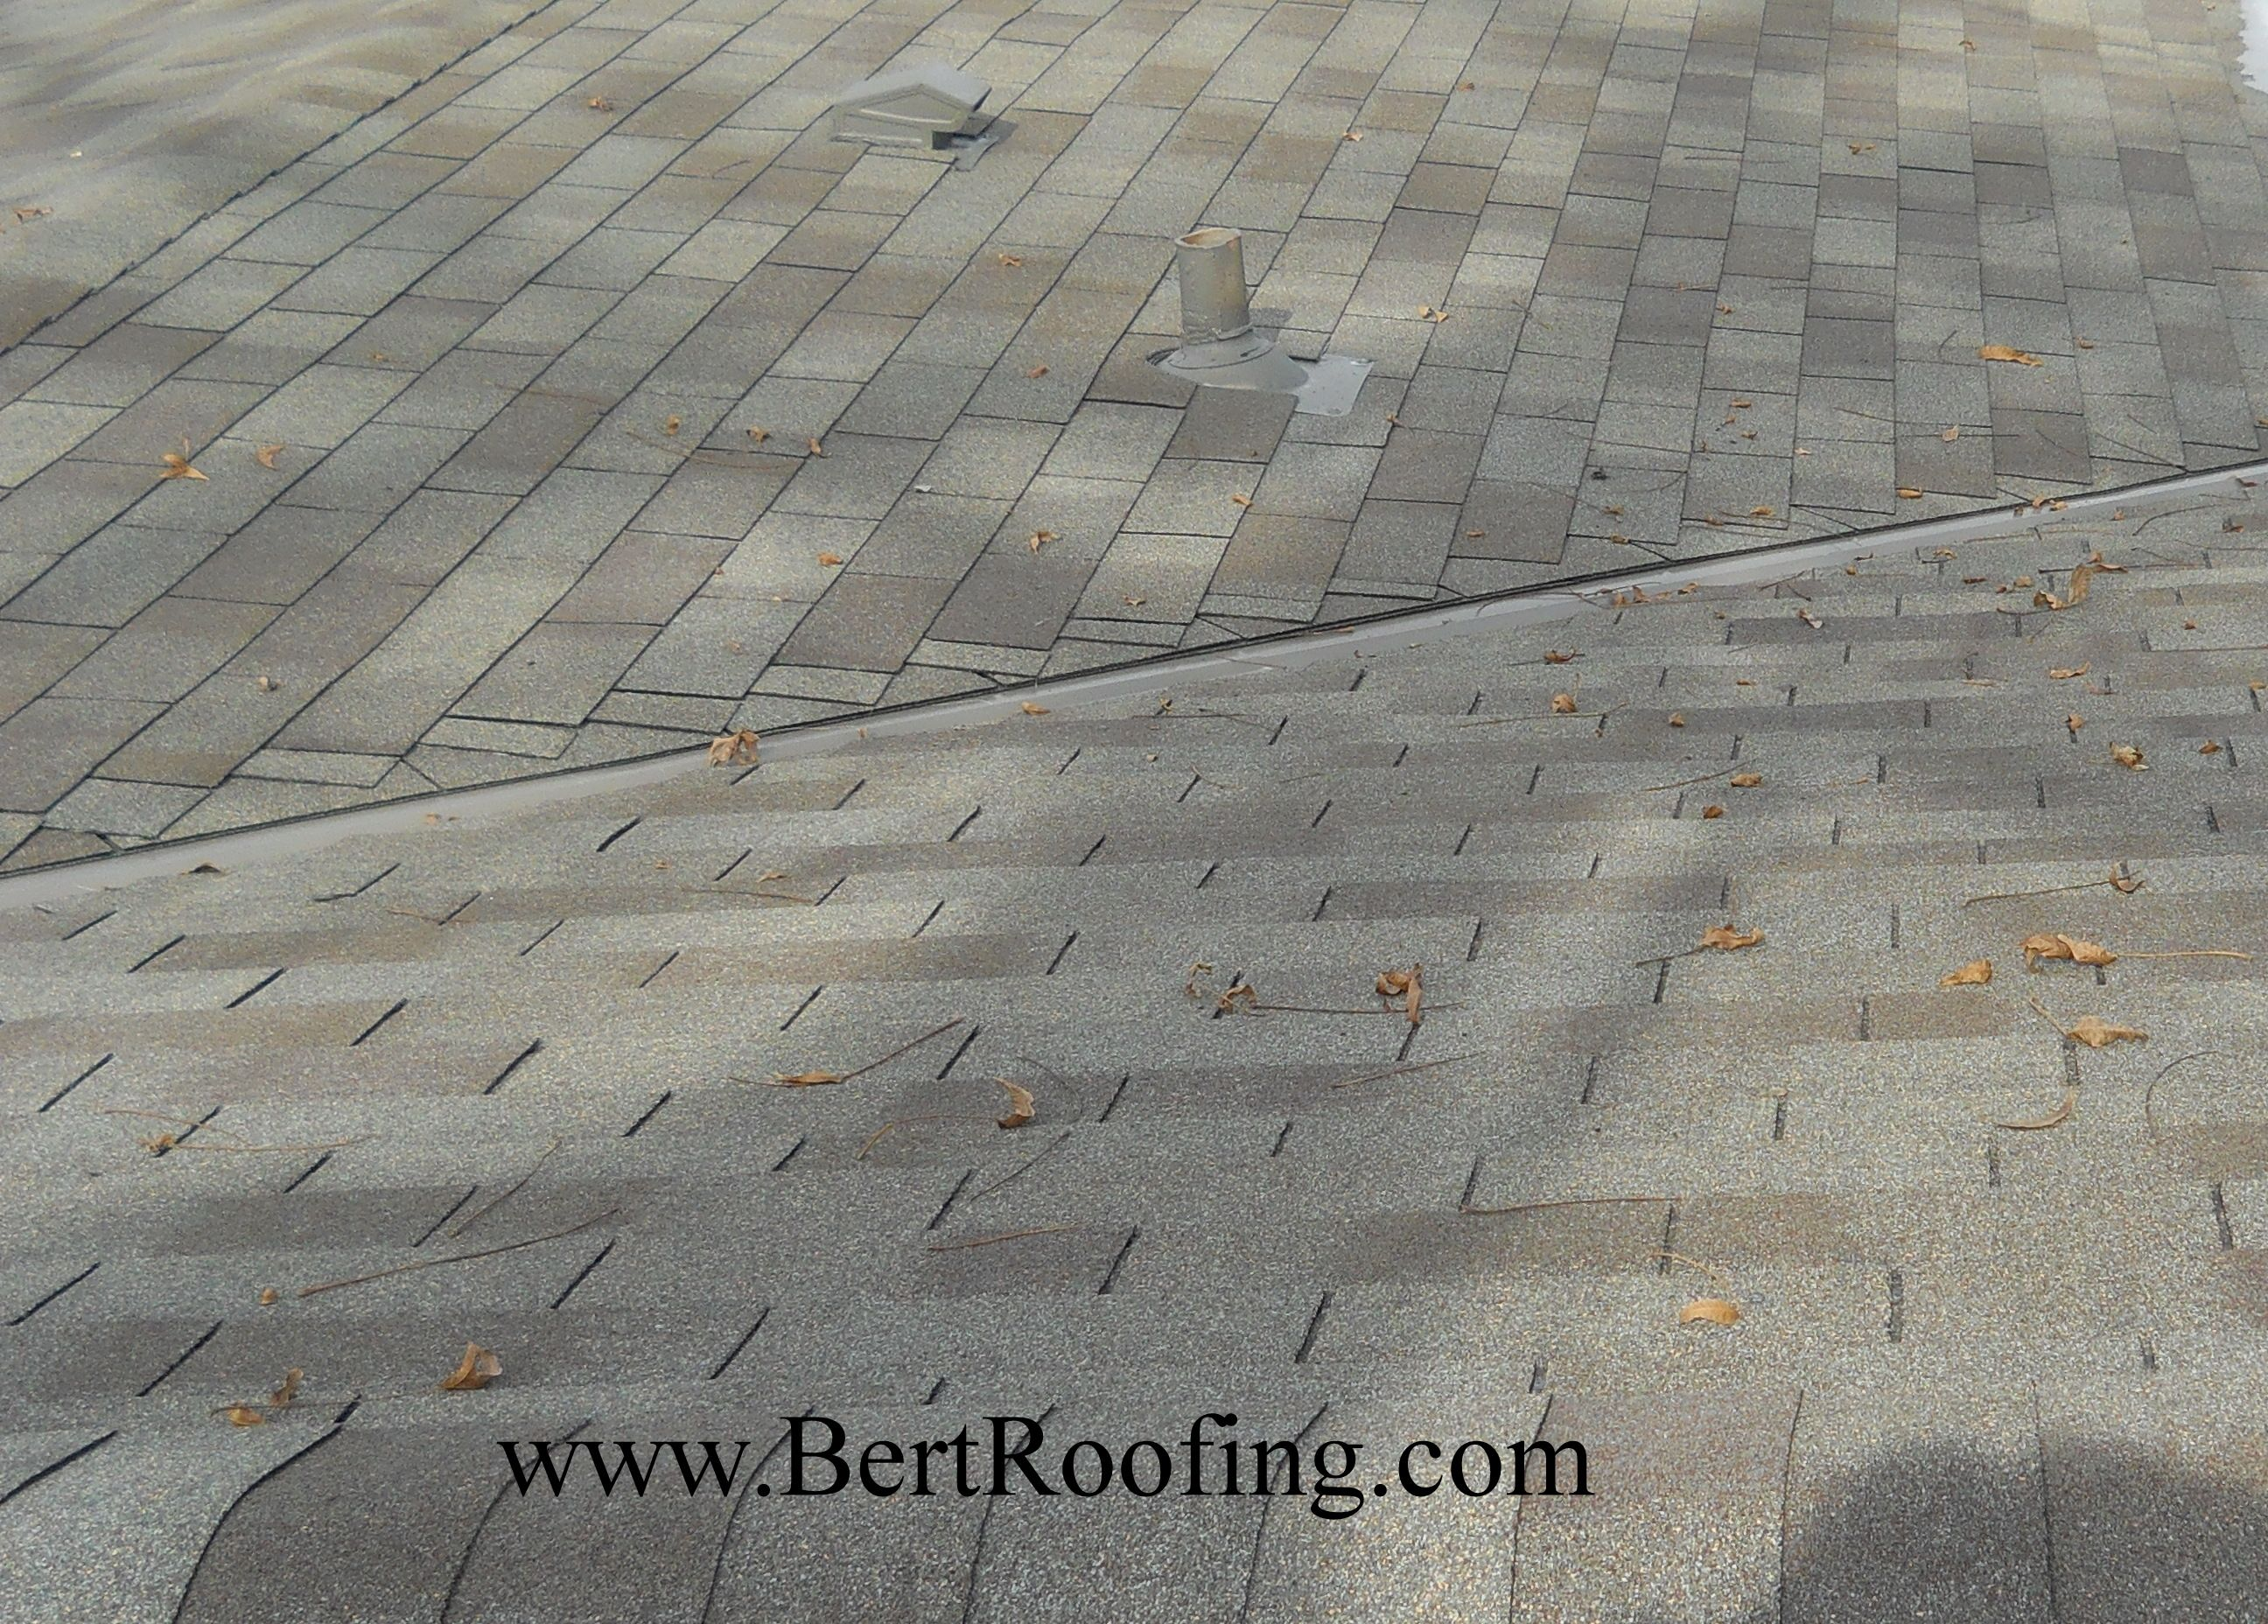 Certainteed Xt 30 3 Tab Composition Shingle Color Weathered Wood W Metal In The Valley Installed By Bert Roofin Roofing Composition Shingles Certainteed